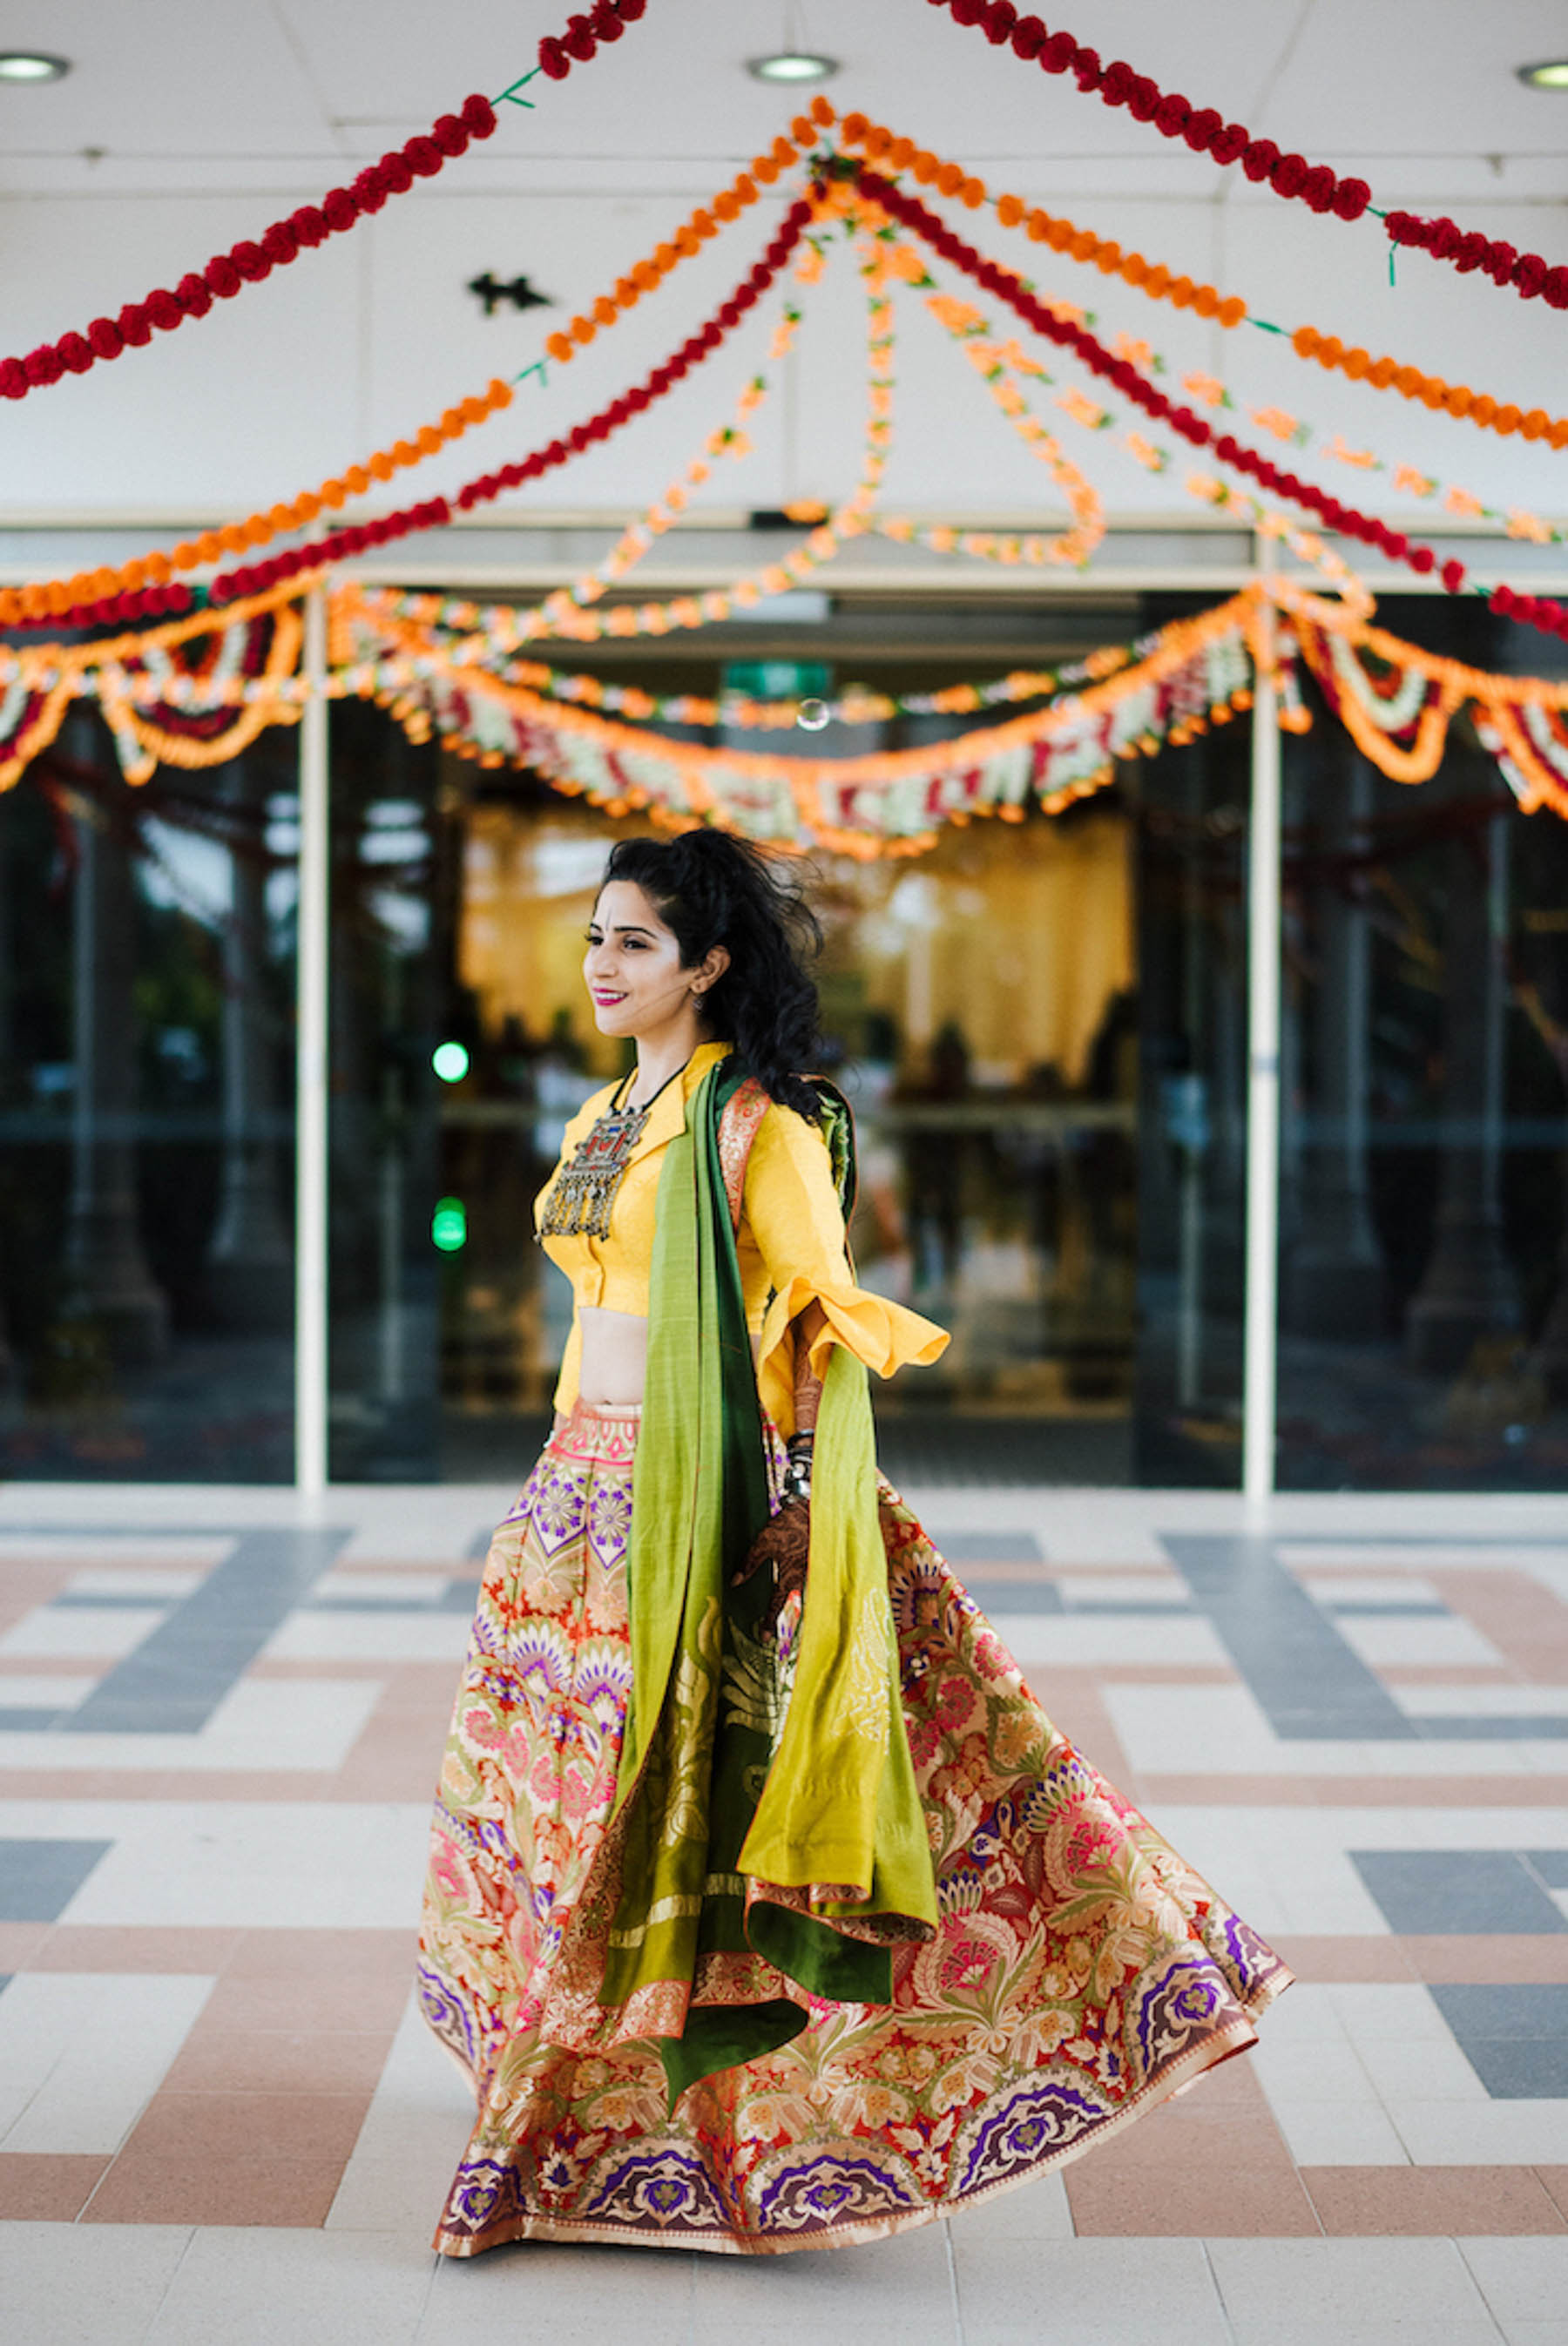 On drawing inspiration for her own wedding look, Nomeeta was quite alternative in her style, opting for unique designer wear that wasn't so common.